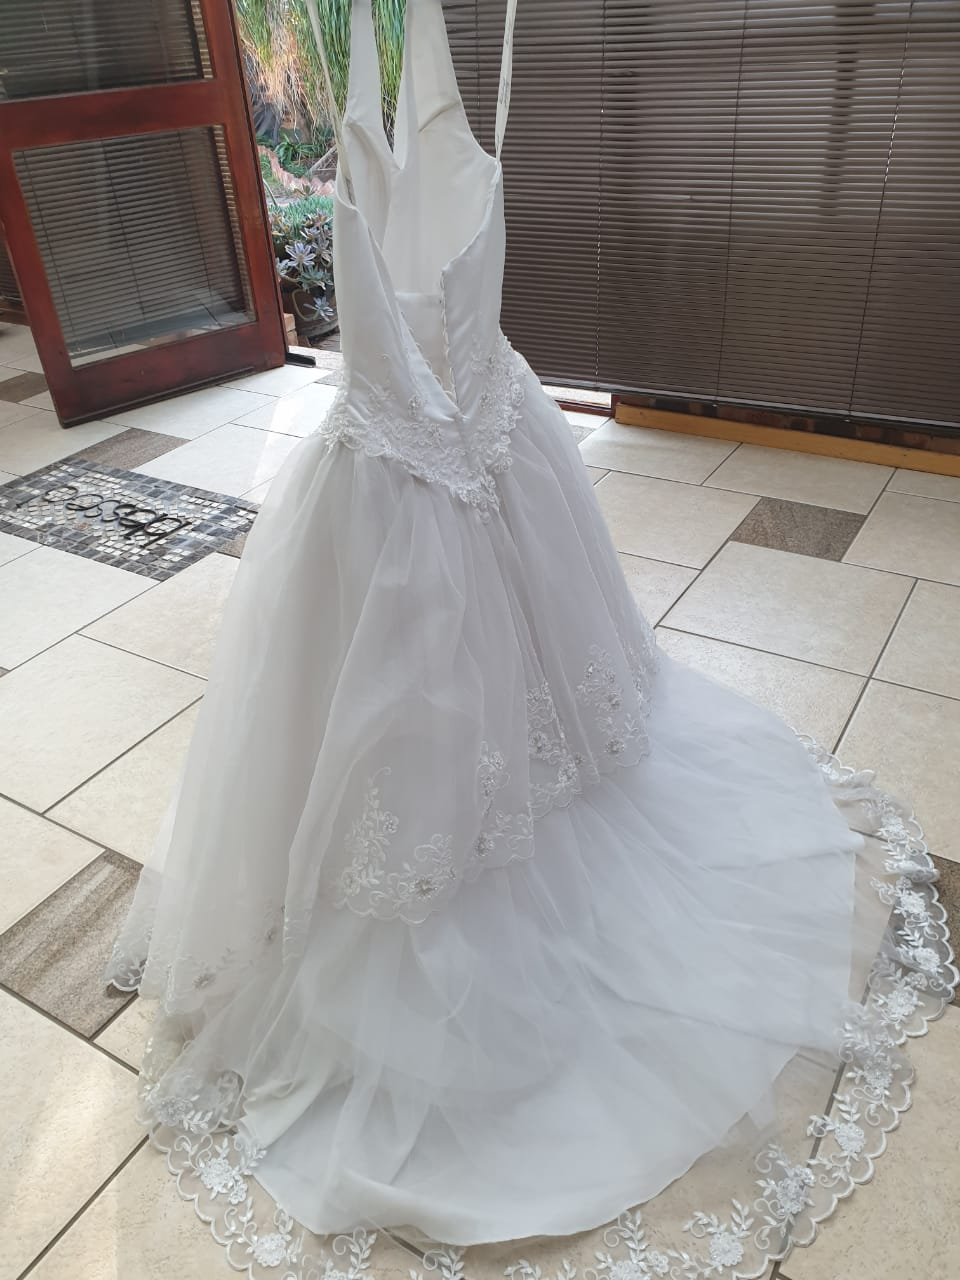 Start your own wedding dress hire, excelent opportunity